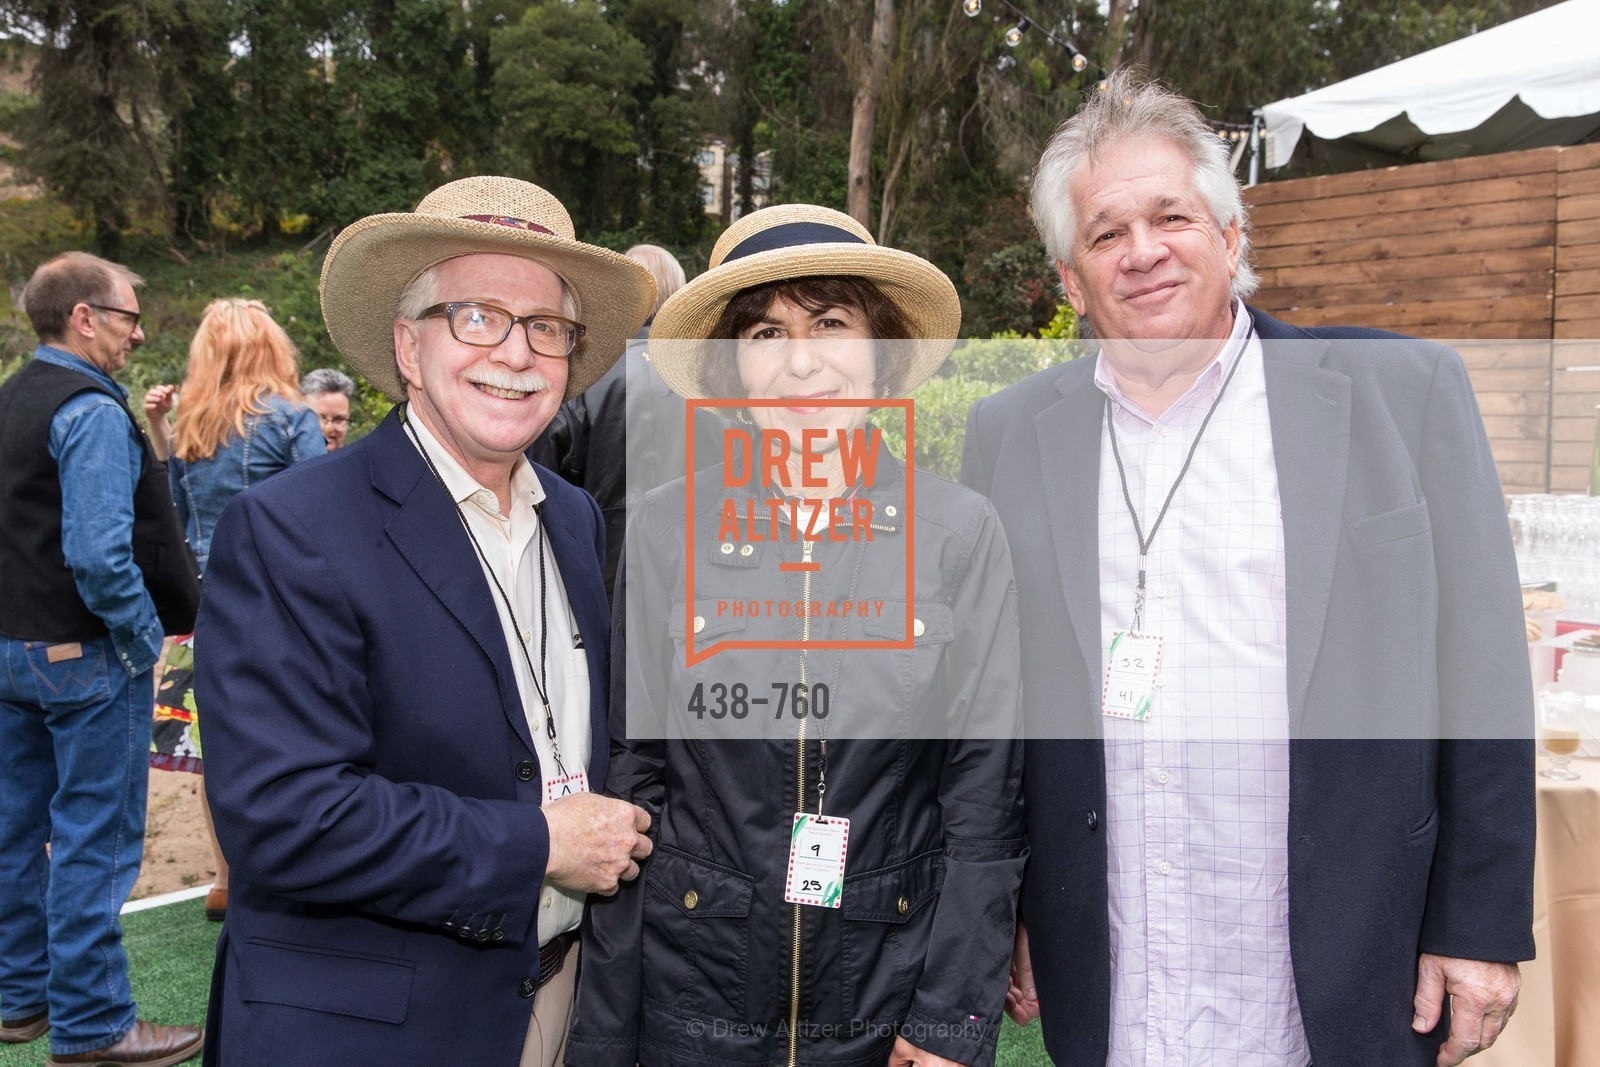 Bob Newman, Jan Newman, Saul Jodel, The Big Picnic! A Benefit & Concert for STERN GROVE FESTIVAL, US, June 14th, 2015,Drew Altizer, Drew Altizer Photography, full-service agency, private events, San Francisco photographer, photographer california